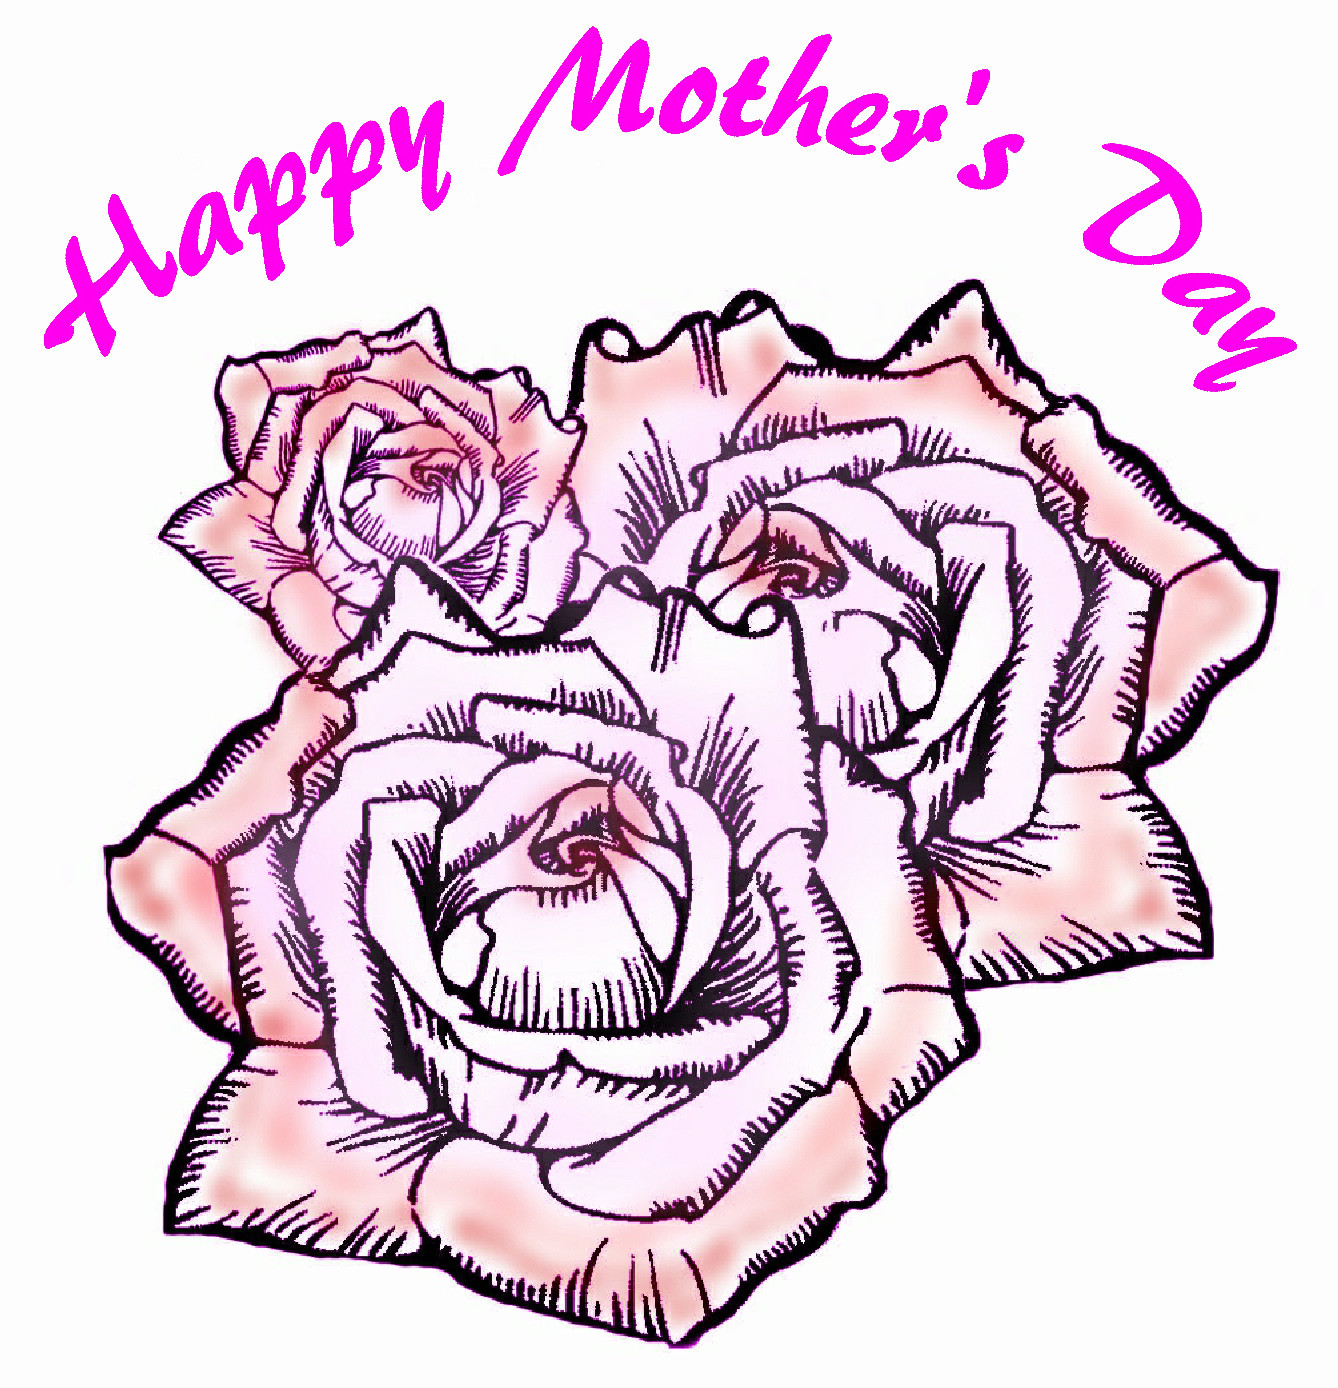 Mother s day christian black and white clipart clip art transparent download Free Mothers Day Clipart, Download Free Clip Art, Free Clip Art on ... clip art transparent download